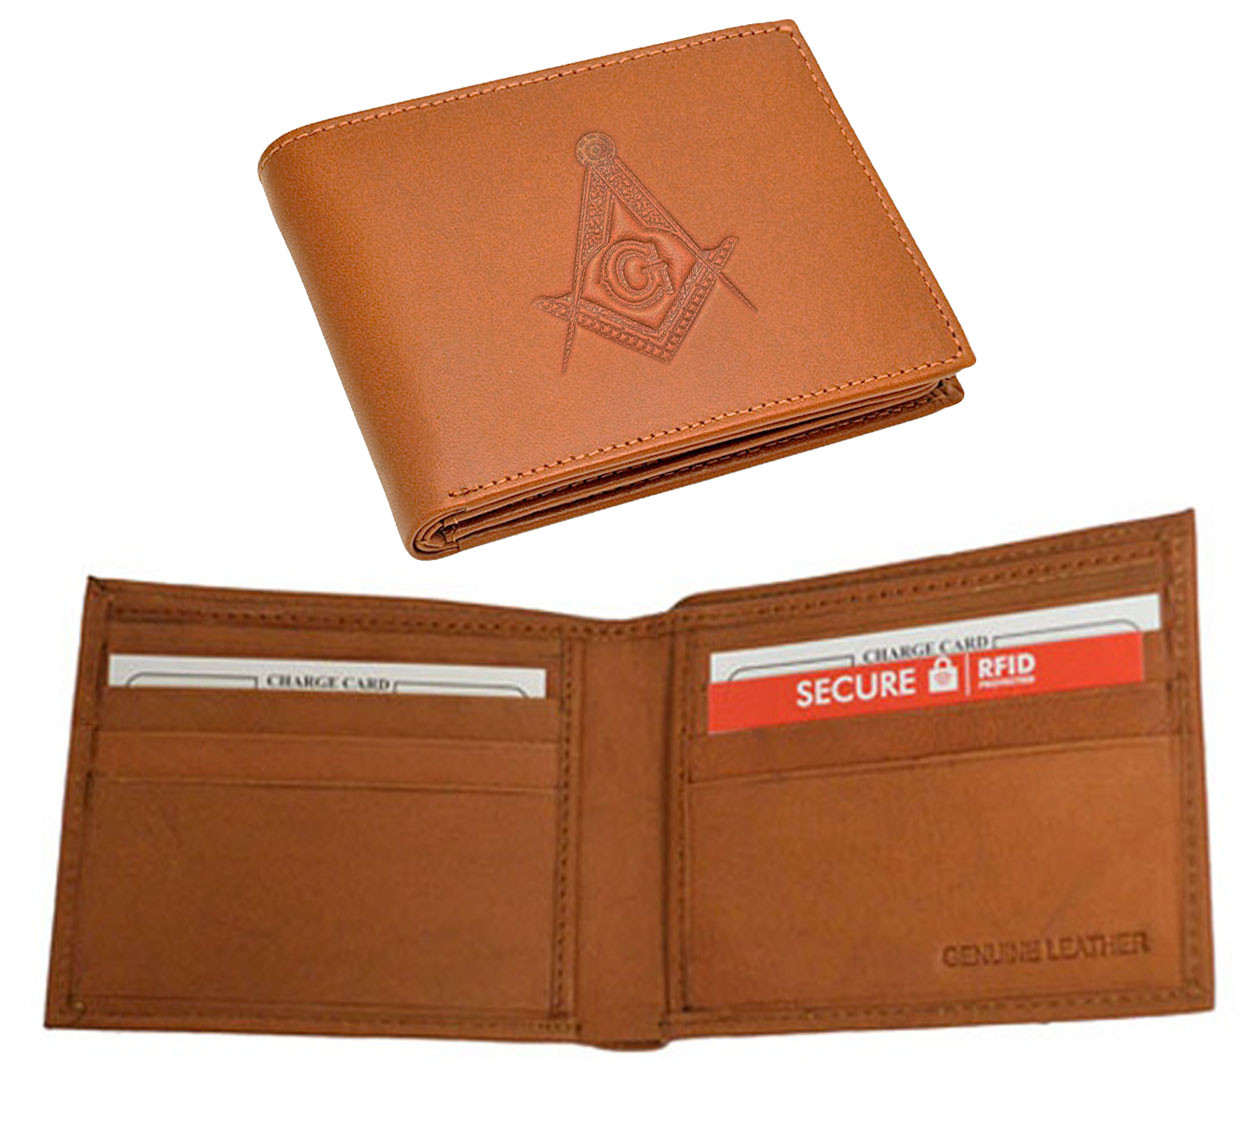 542c1f04a24b One (1) Masonic Tan Leather Wallet with Large Centered Masonic ...